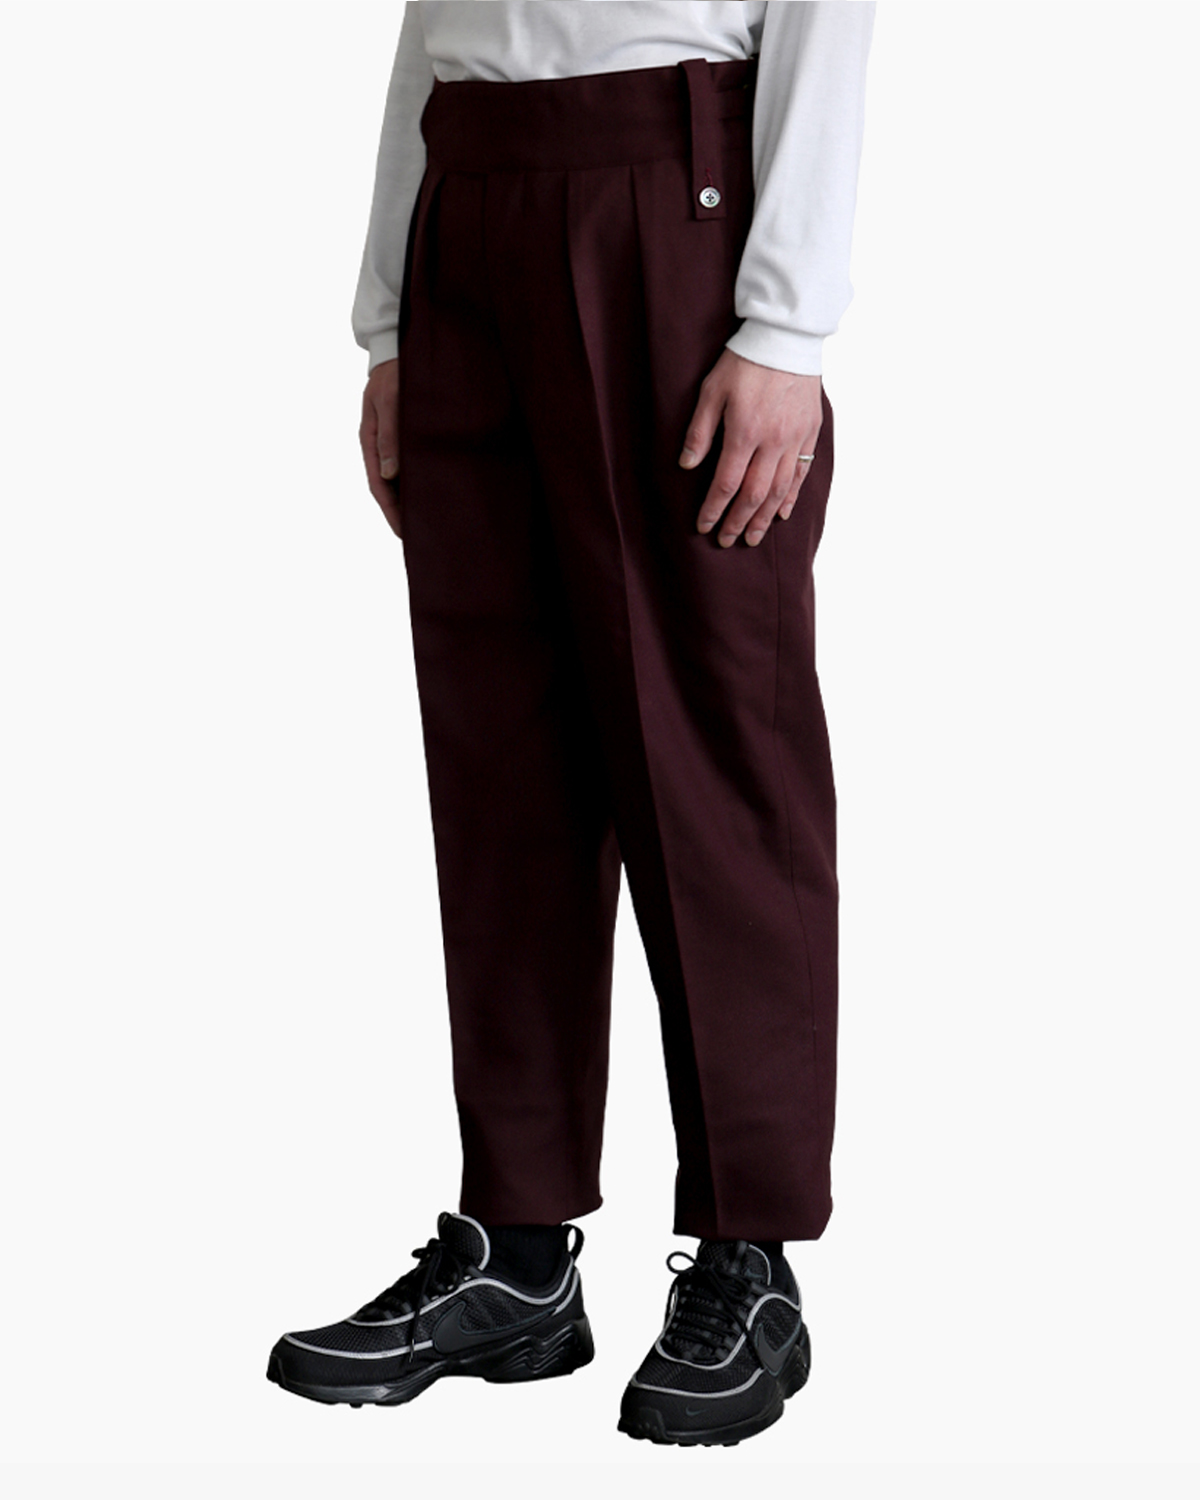 HOPSACK|BELTLESS – Vintage Bordeaux|Exclusive|NEAT